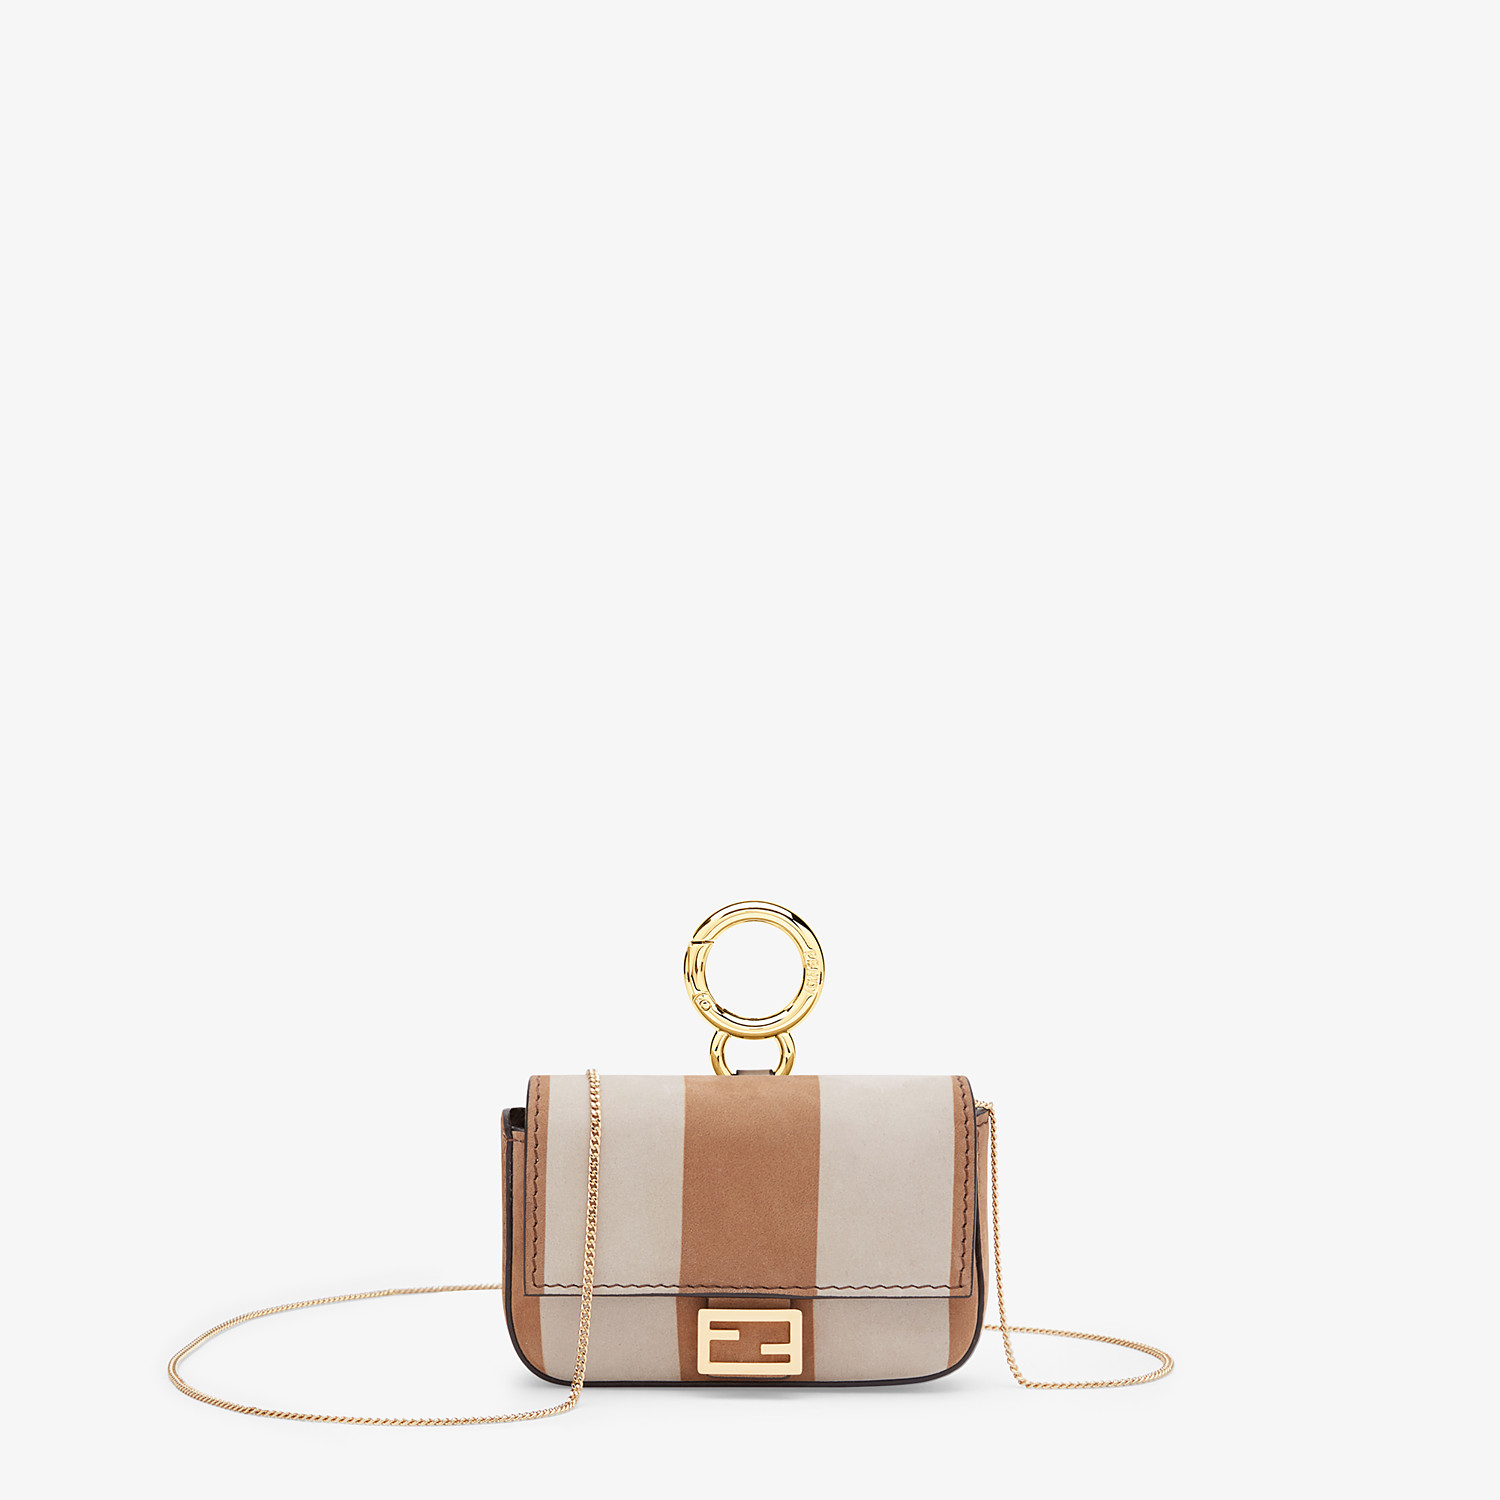 FENDI NANO BAGUETTE - Beige nubuck leather charm - view 1 detail